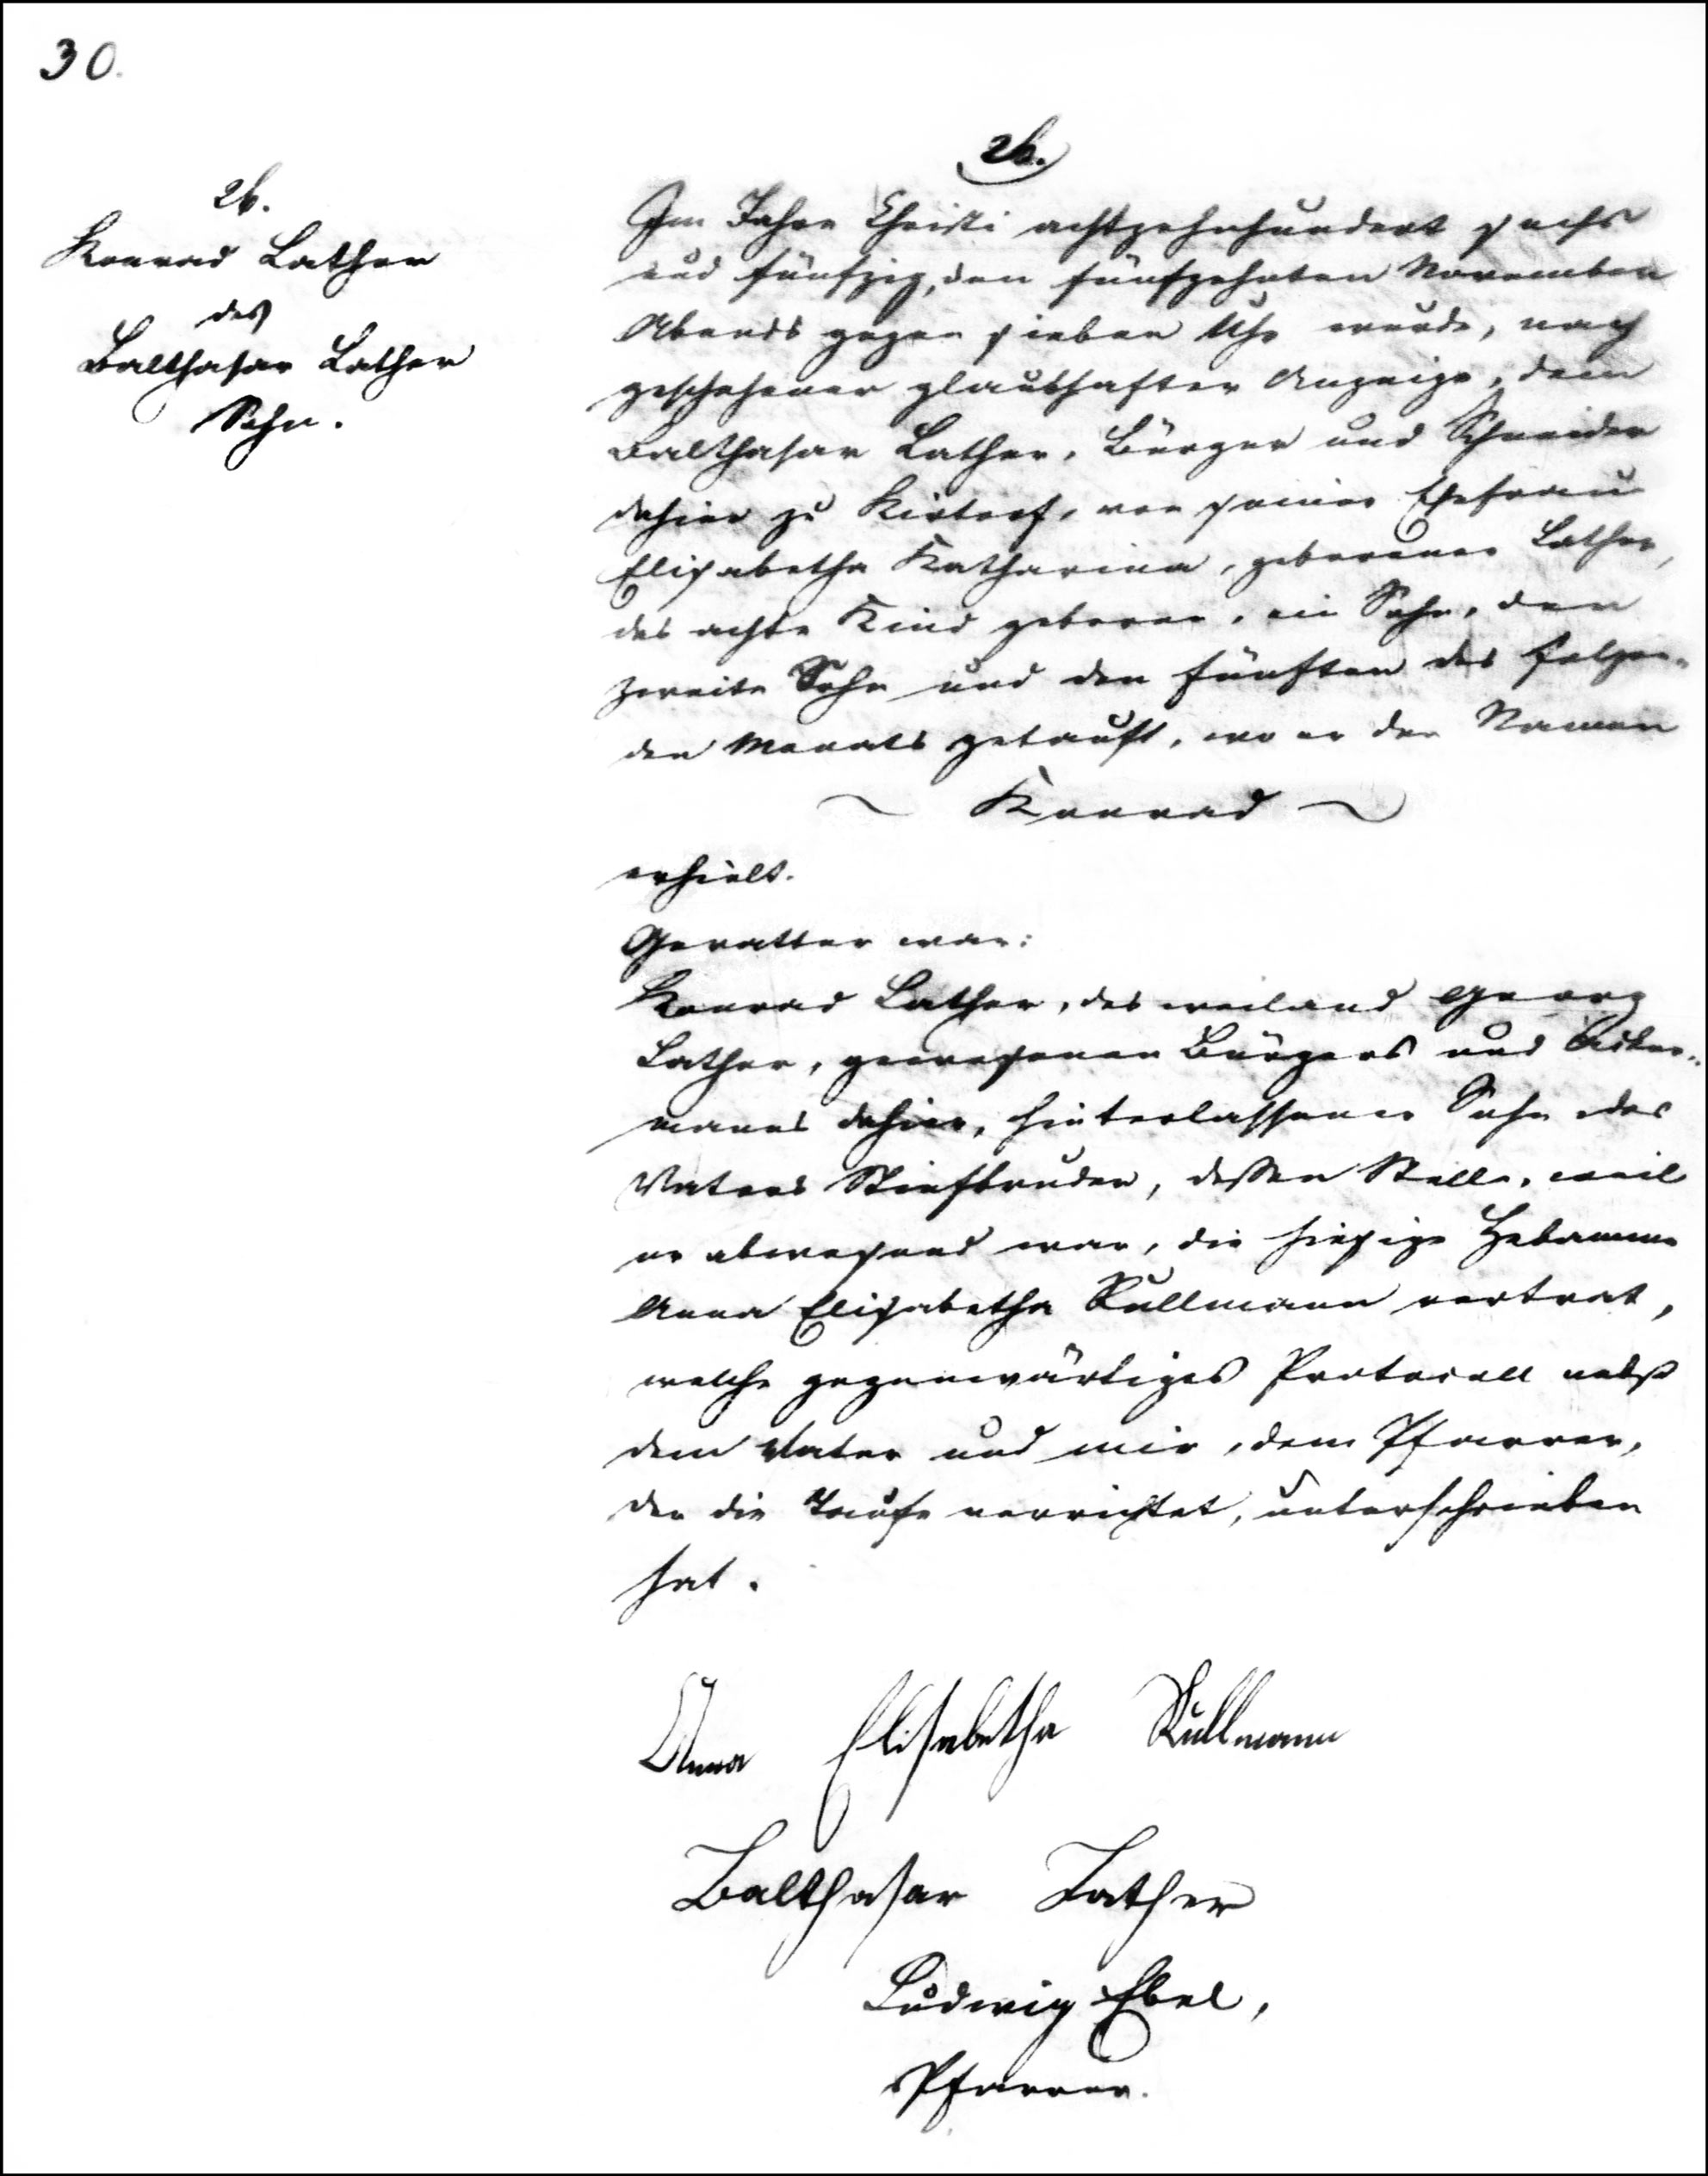 The Birth and Baptismal Record of Konrad Lather - 1856